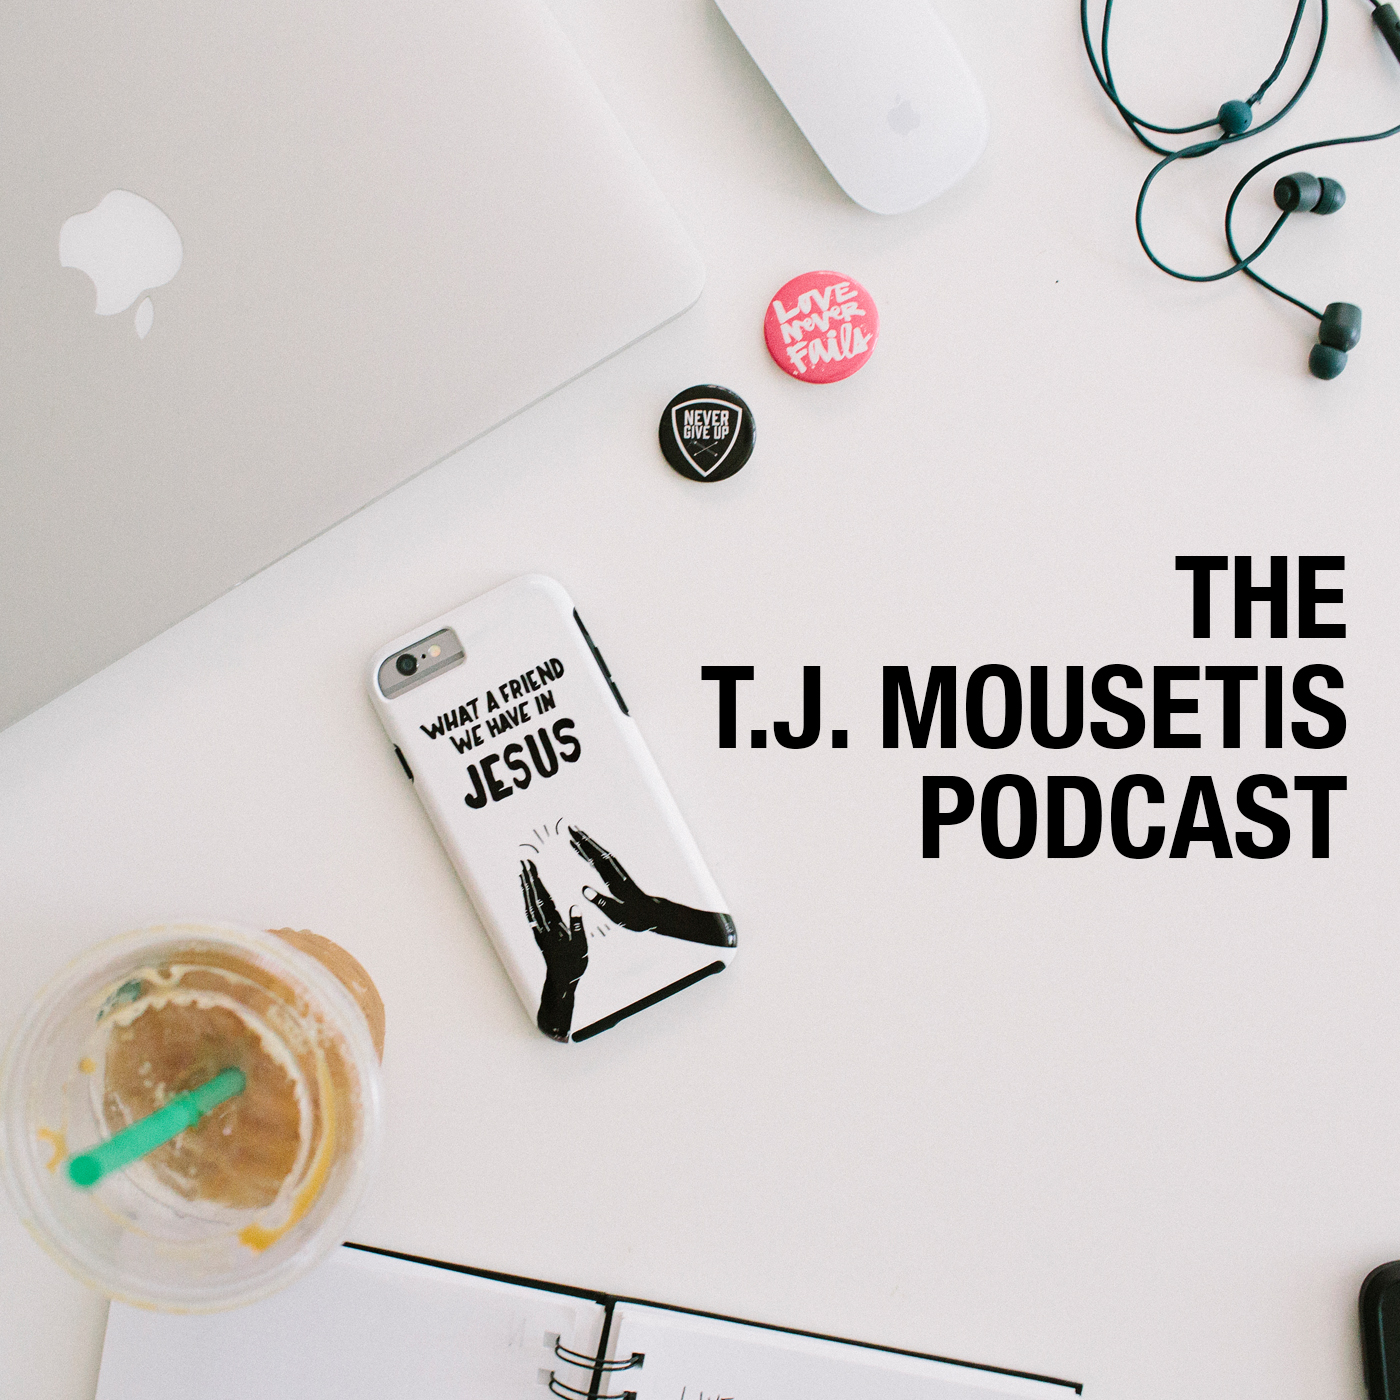 Podcast - T.J. MOUSETIS